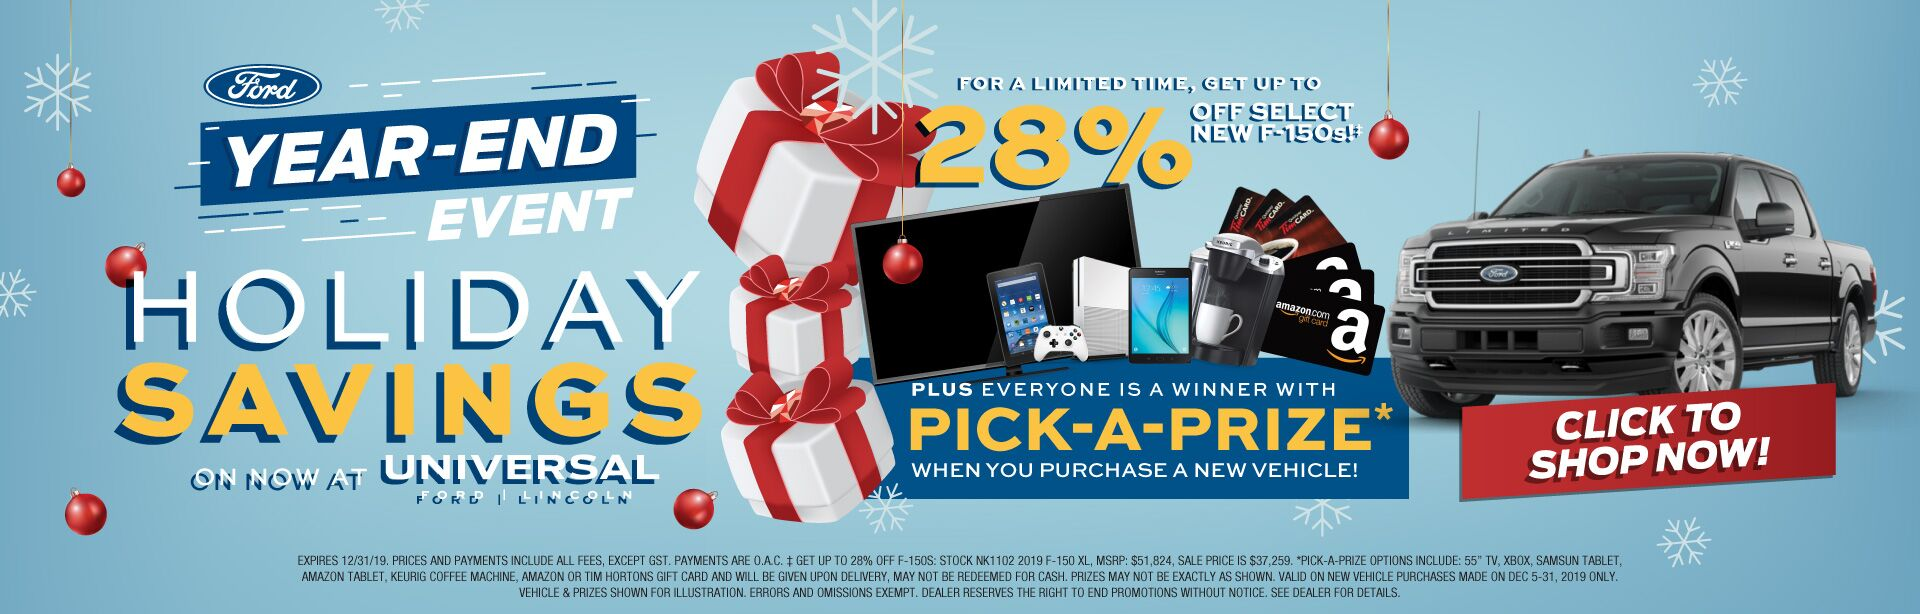 Year-End Event Holiday Savings